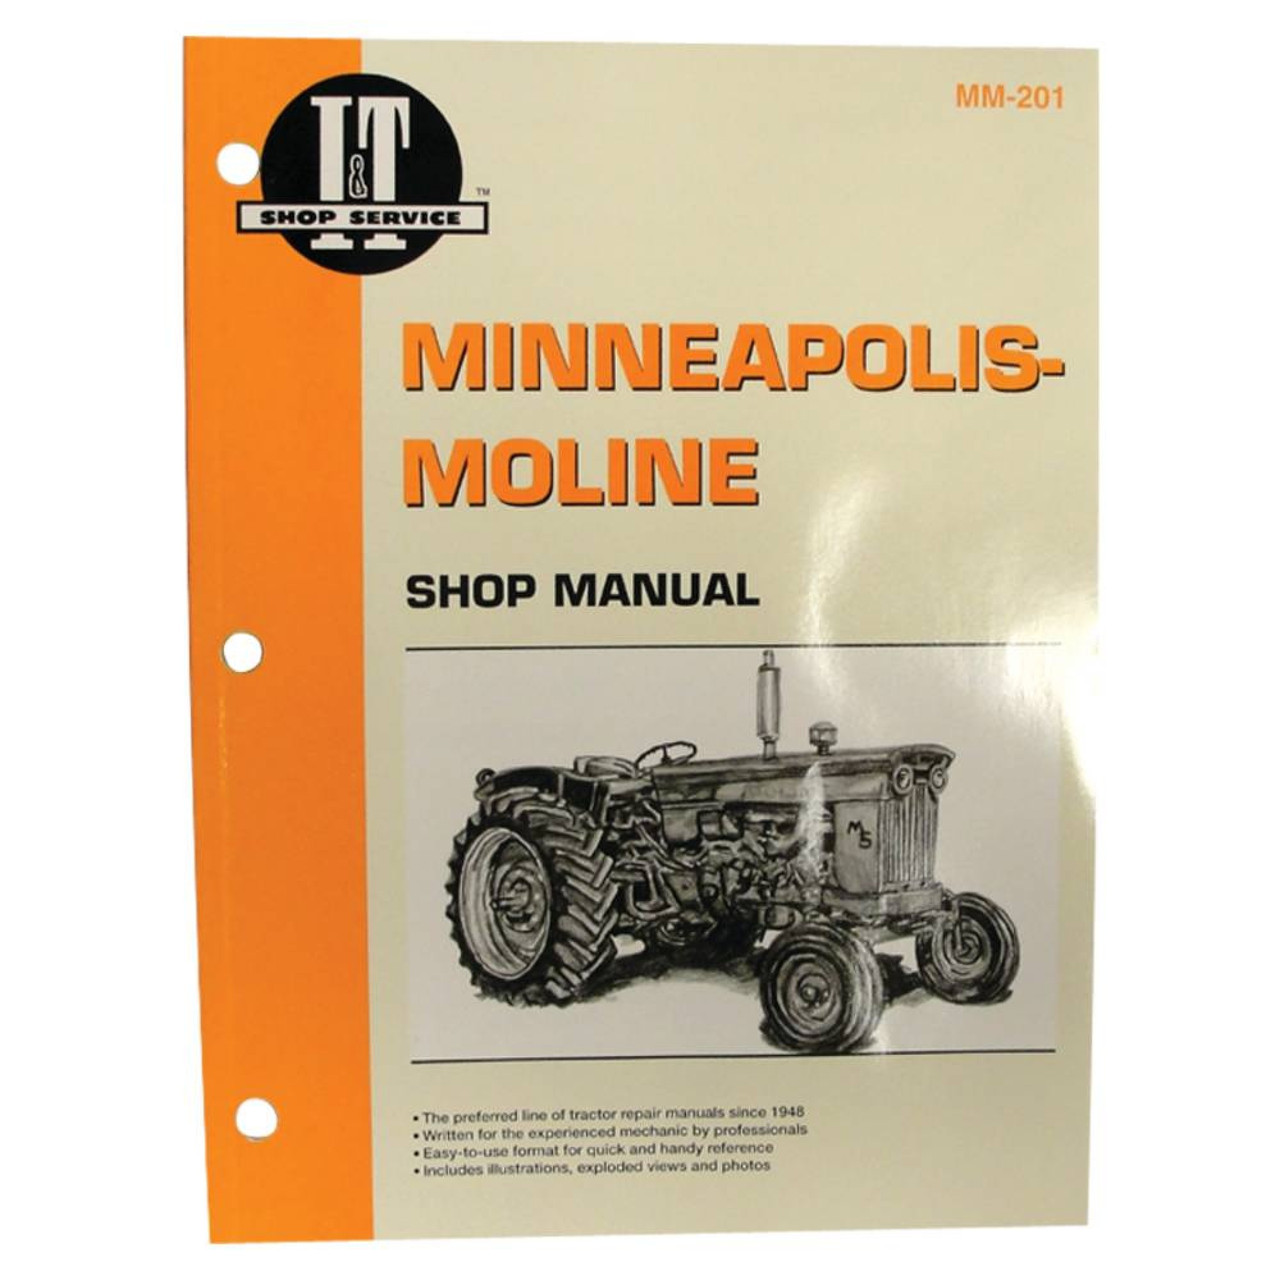 hight resolution of new service manual for minneapolis moline tractor mm201 335 4 5 battery wire diagram avery a tractor wire diagrams